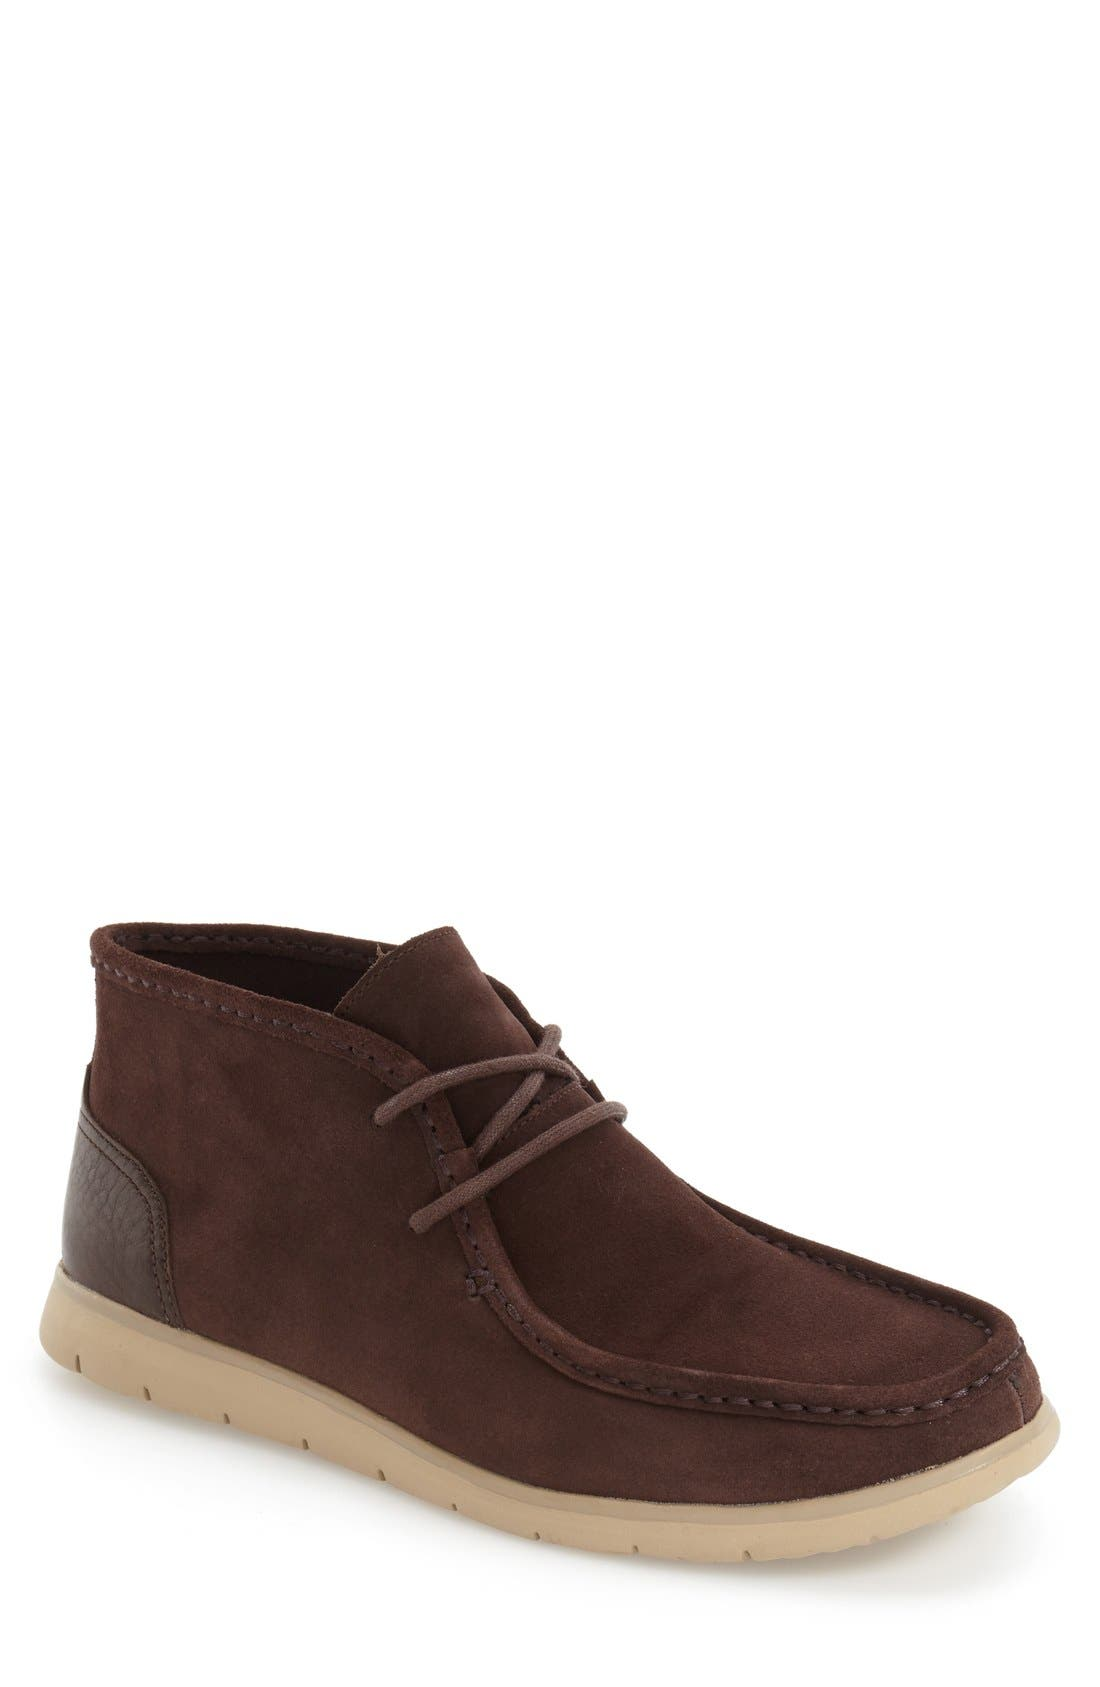 Alternate Image 1 Selected - UGG® 'Hendrickson' Chukka Boot (Men)